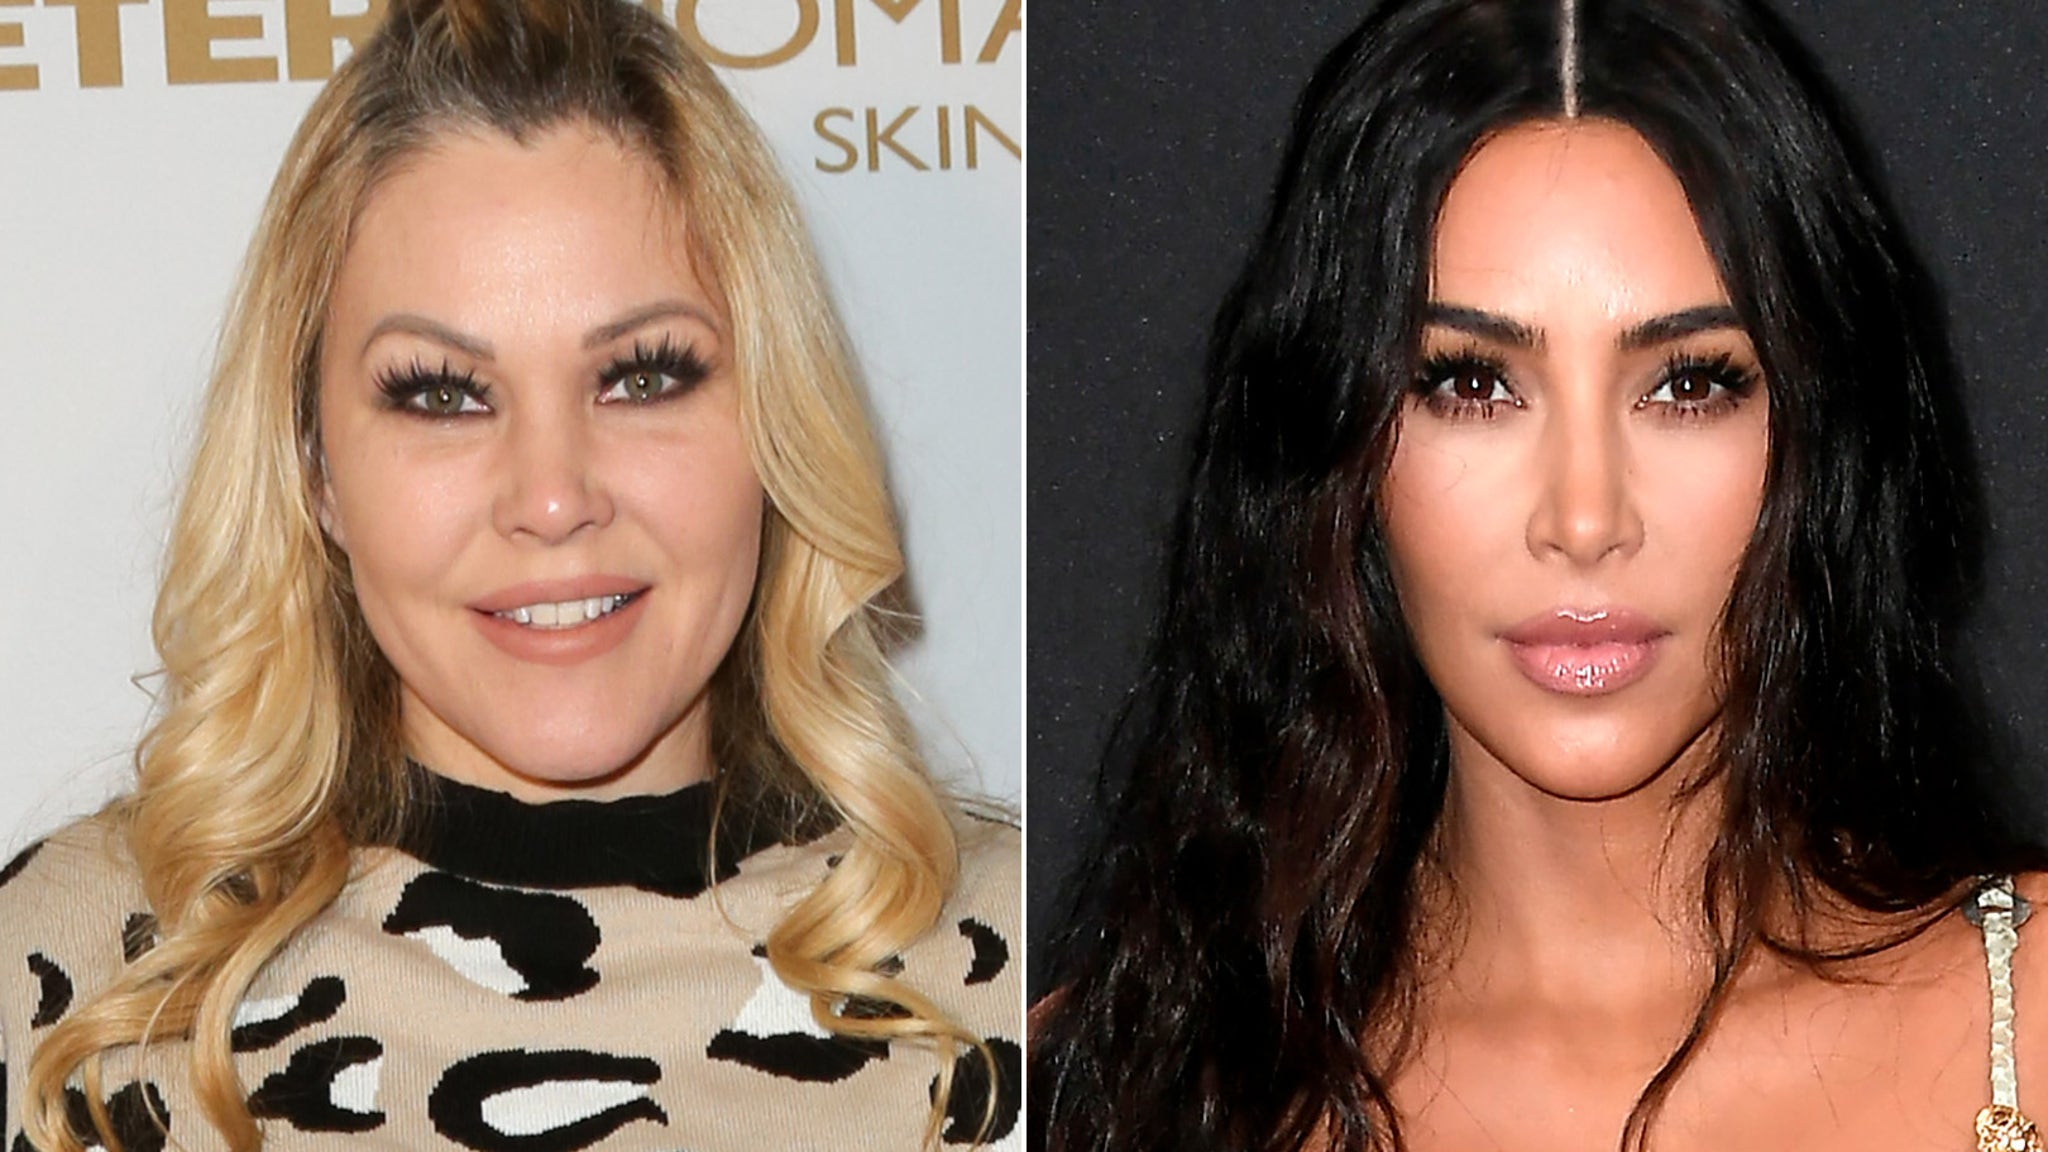 Shanna Moakler backs Kim Kardashian's 'Hate' post in comment that has since been deleted